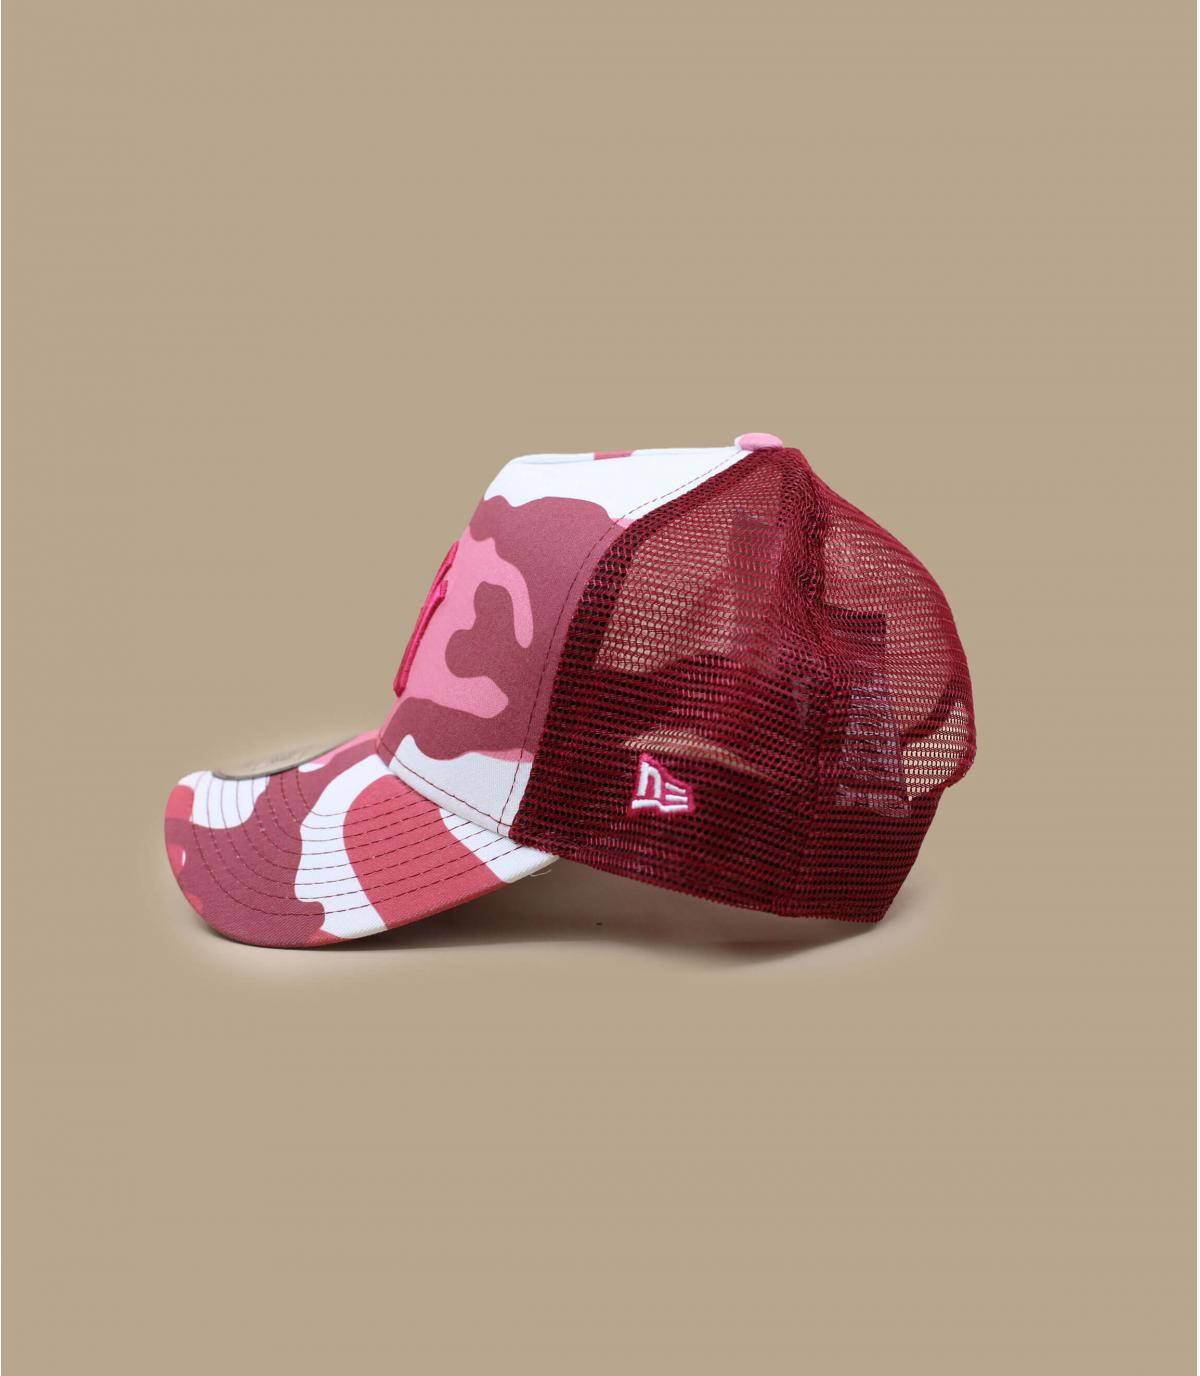 Détails Trucker Camo Pack NY red - image 3